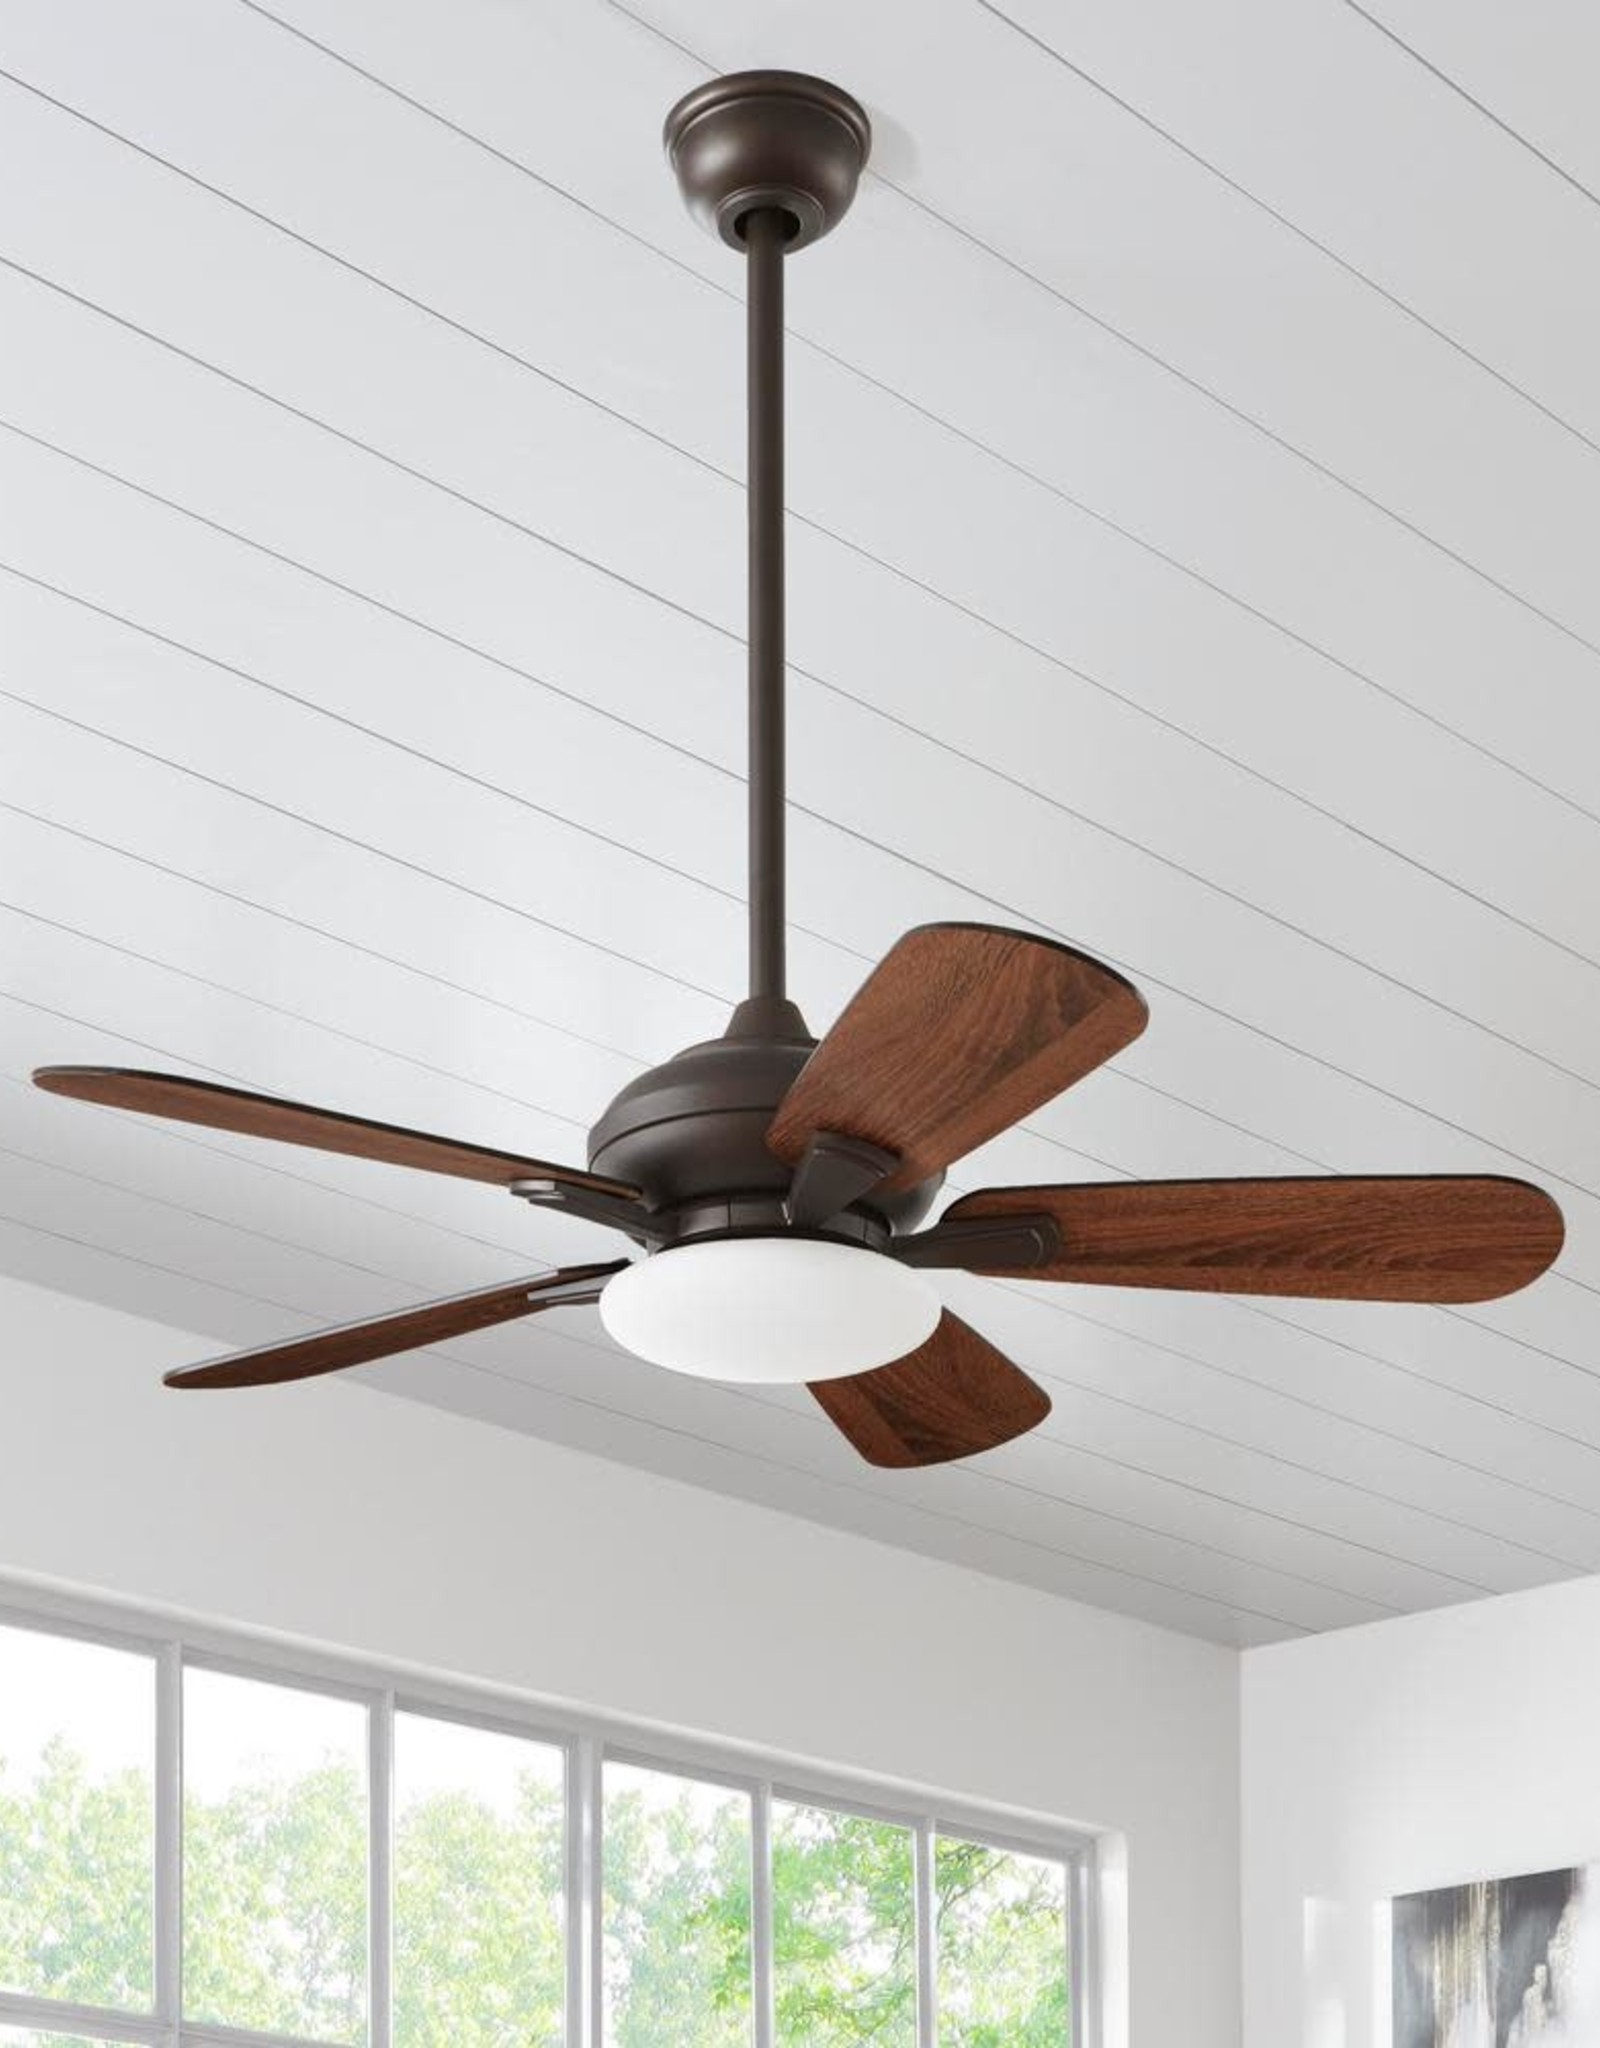 Home Decorators Collection Benson 44 in. LED Espresso Bronze Ceiling Fan with Light and Remote Control